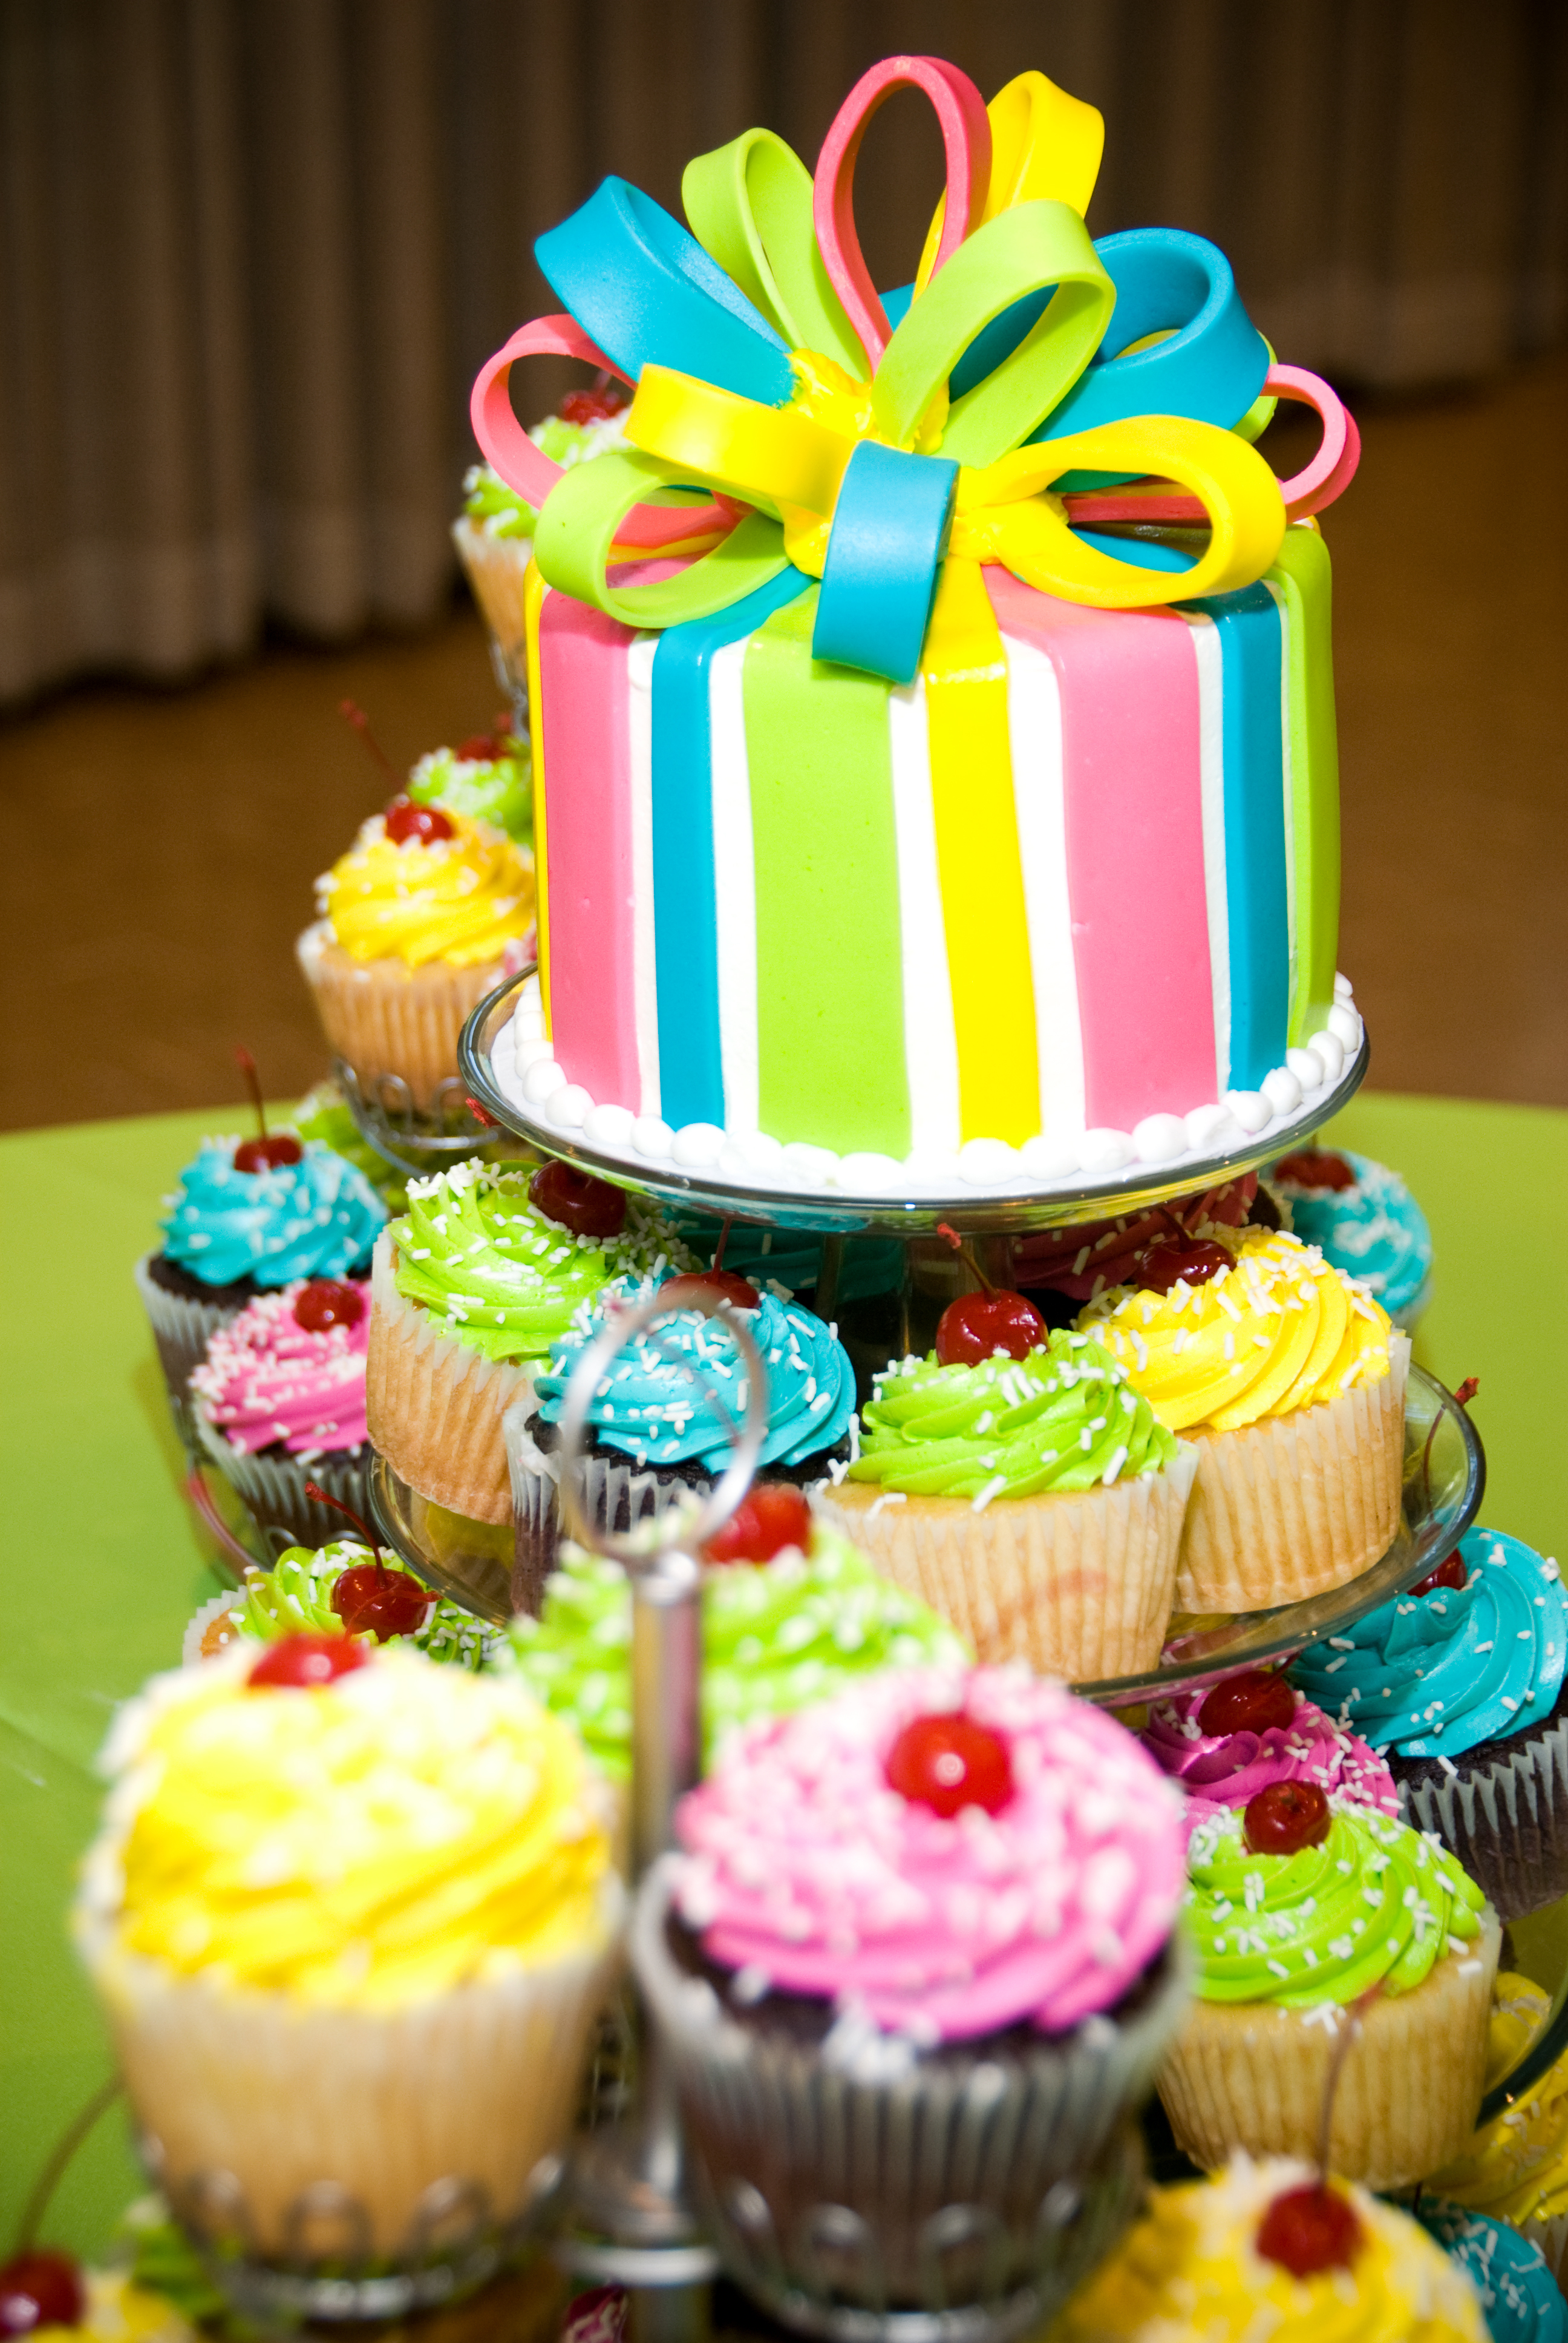 Reception, Flowers & Decor, Cakes, white, yellow, pink, green, cake, Summer, Cupcakes, Lime, Wedding, Colors, Bright, Turquoise